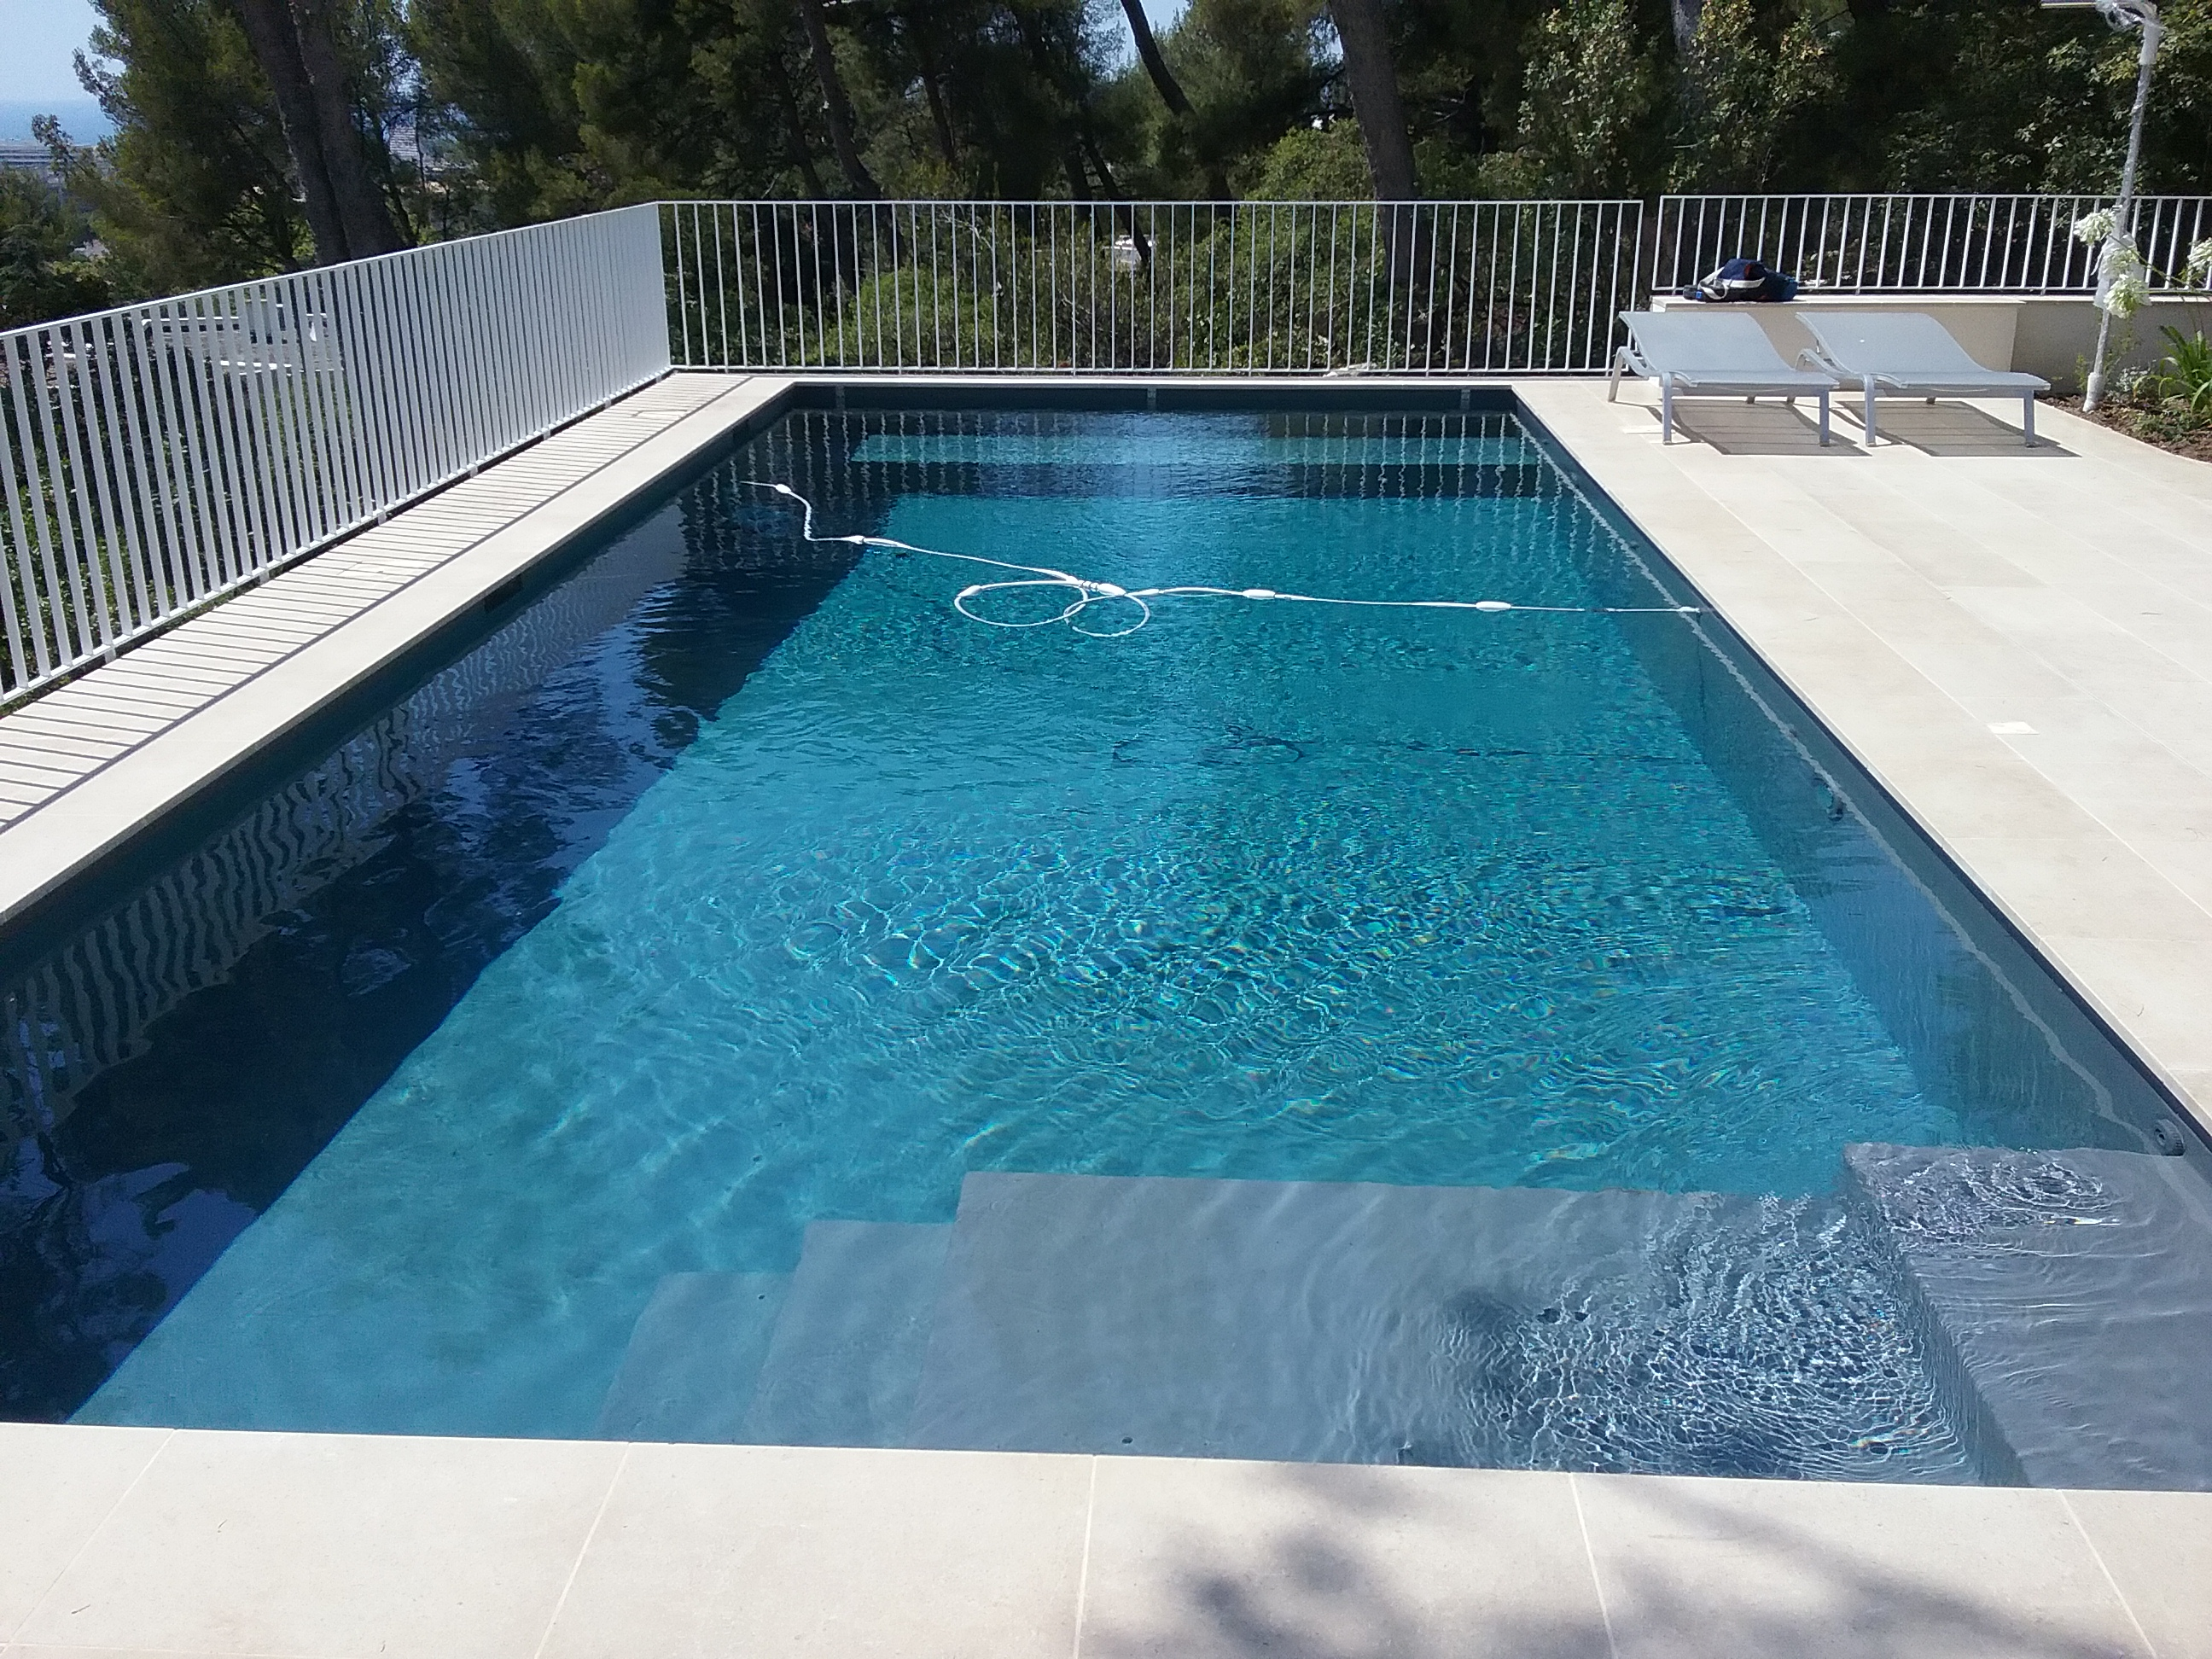 Construction de piscine toulon var sanary six fours - Piscine liner ou carrelage ...